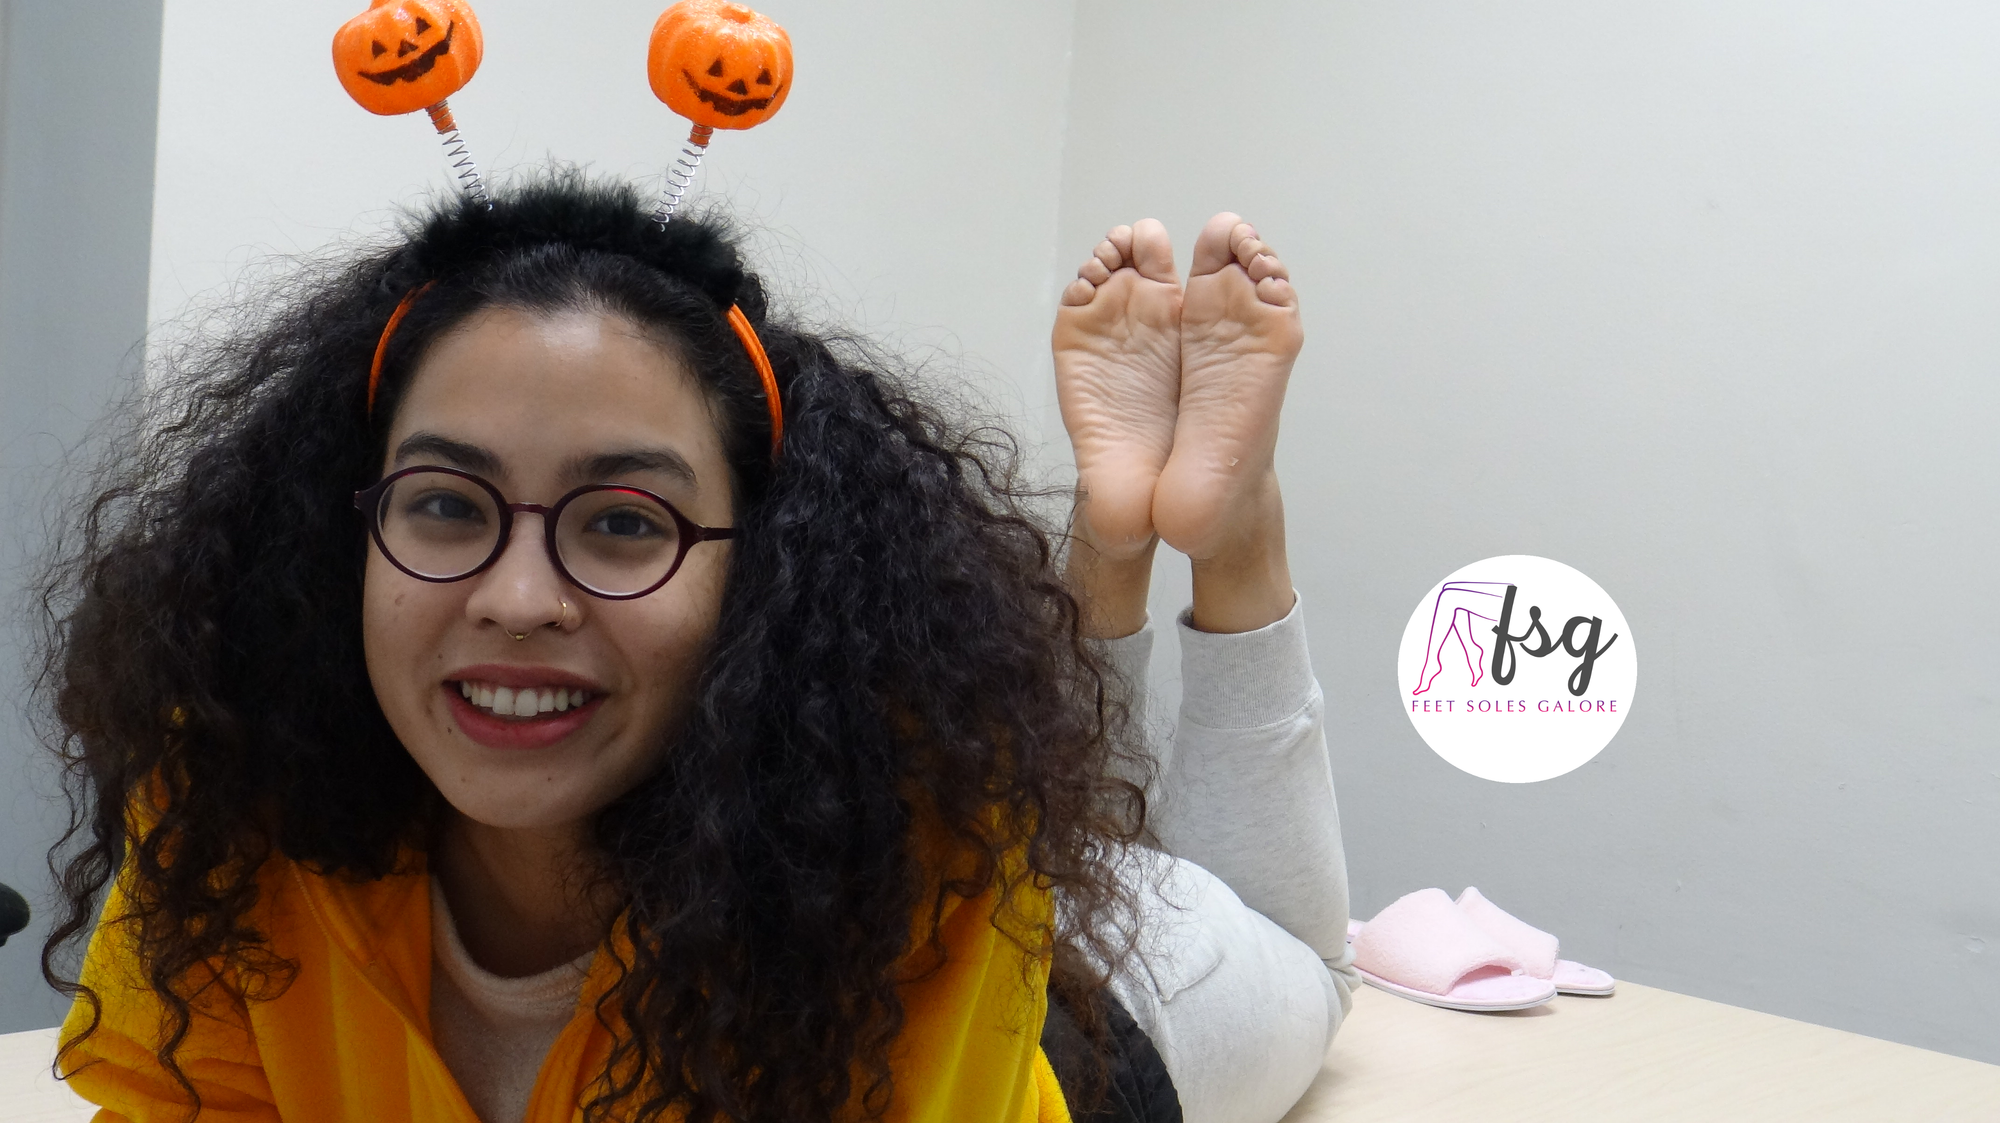 Asian feet soles long toes and soles big stinky beautiful dry feet foot folding curling toes curled toes toe nail foot fetish barefoot young college ebony pretty feet cum candid